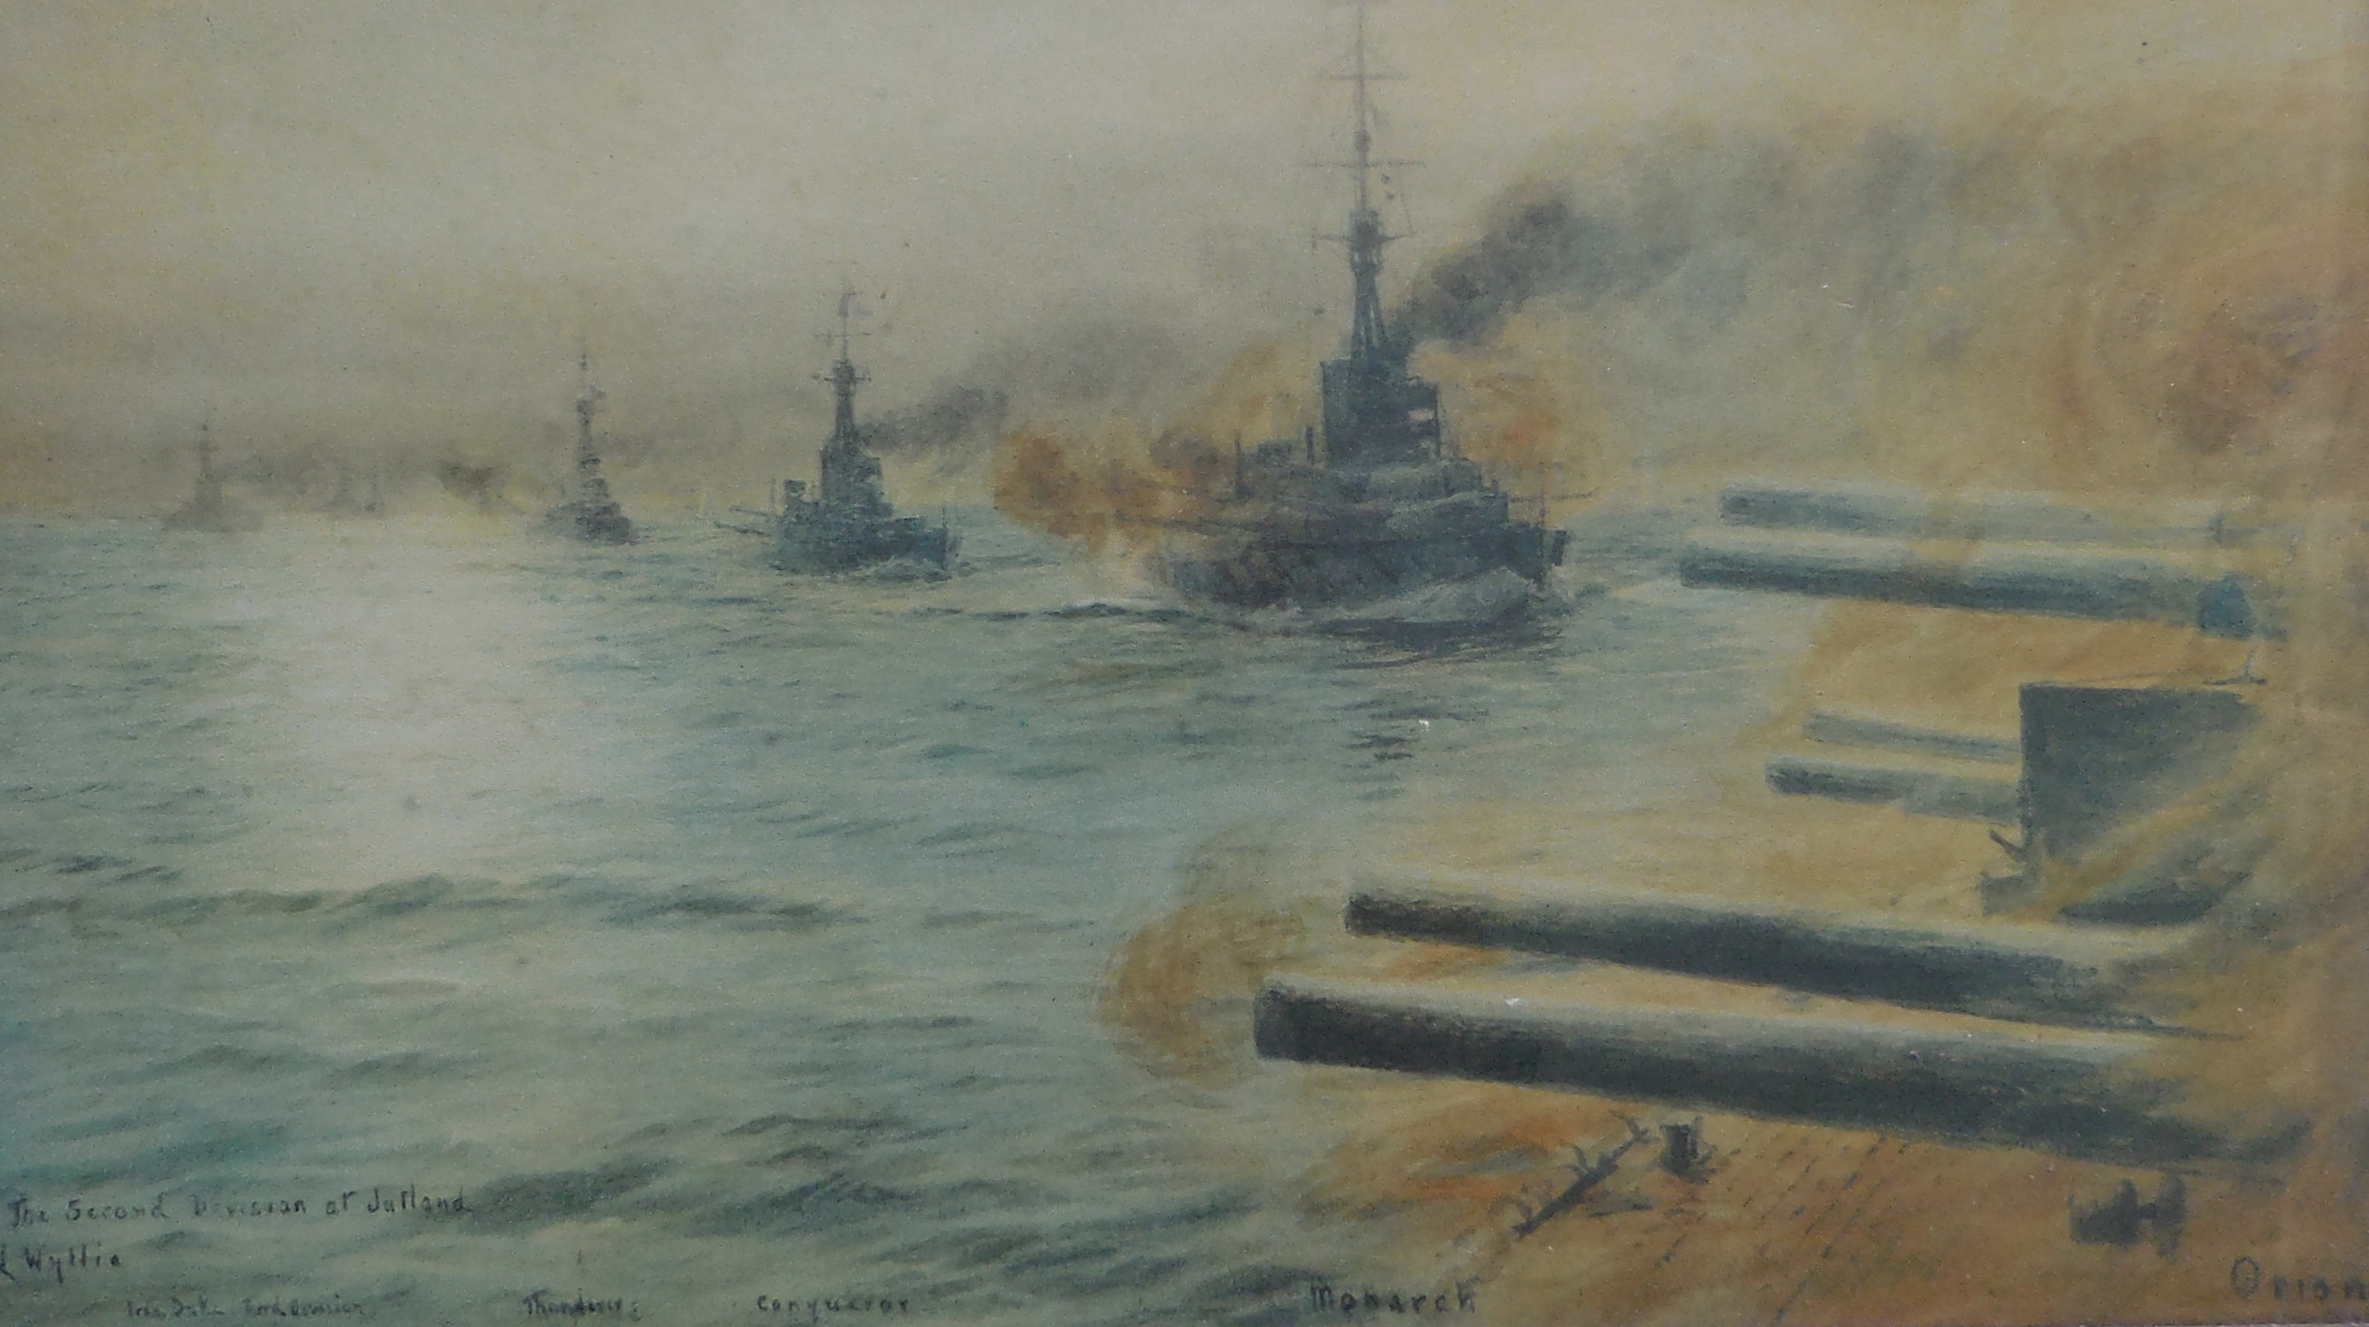 the battle of jutland The battle of jutland—or the battle of the skagerrak, as it was known to the germans—engaged a total of 100,000 men aboard 250 ships over the course of 72 hours the germans, giddy from the glory of scheer's brilliant escape, claimed it as a victory for their high seas fleet at first the british press agreed, but the truth was not so clear.